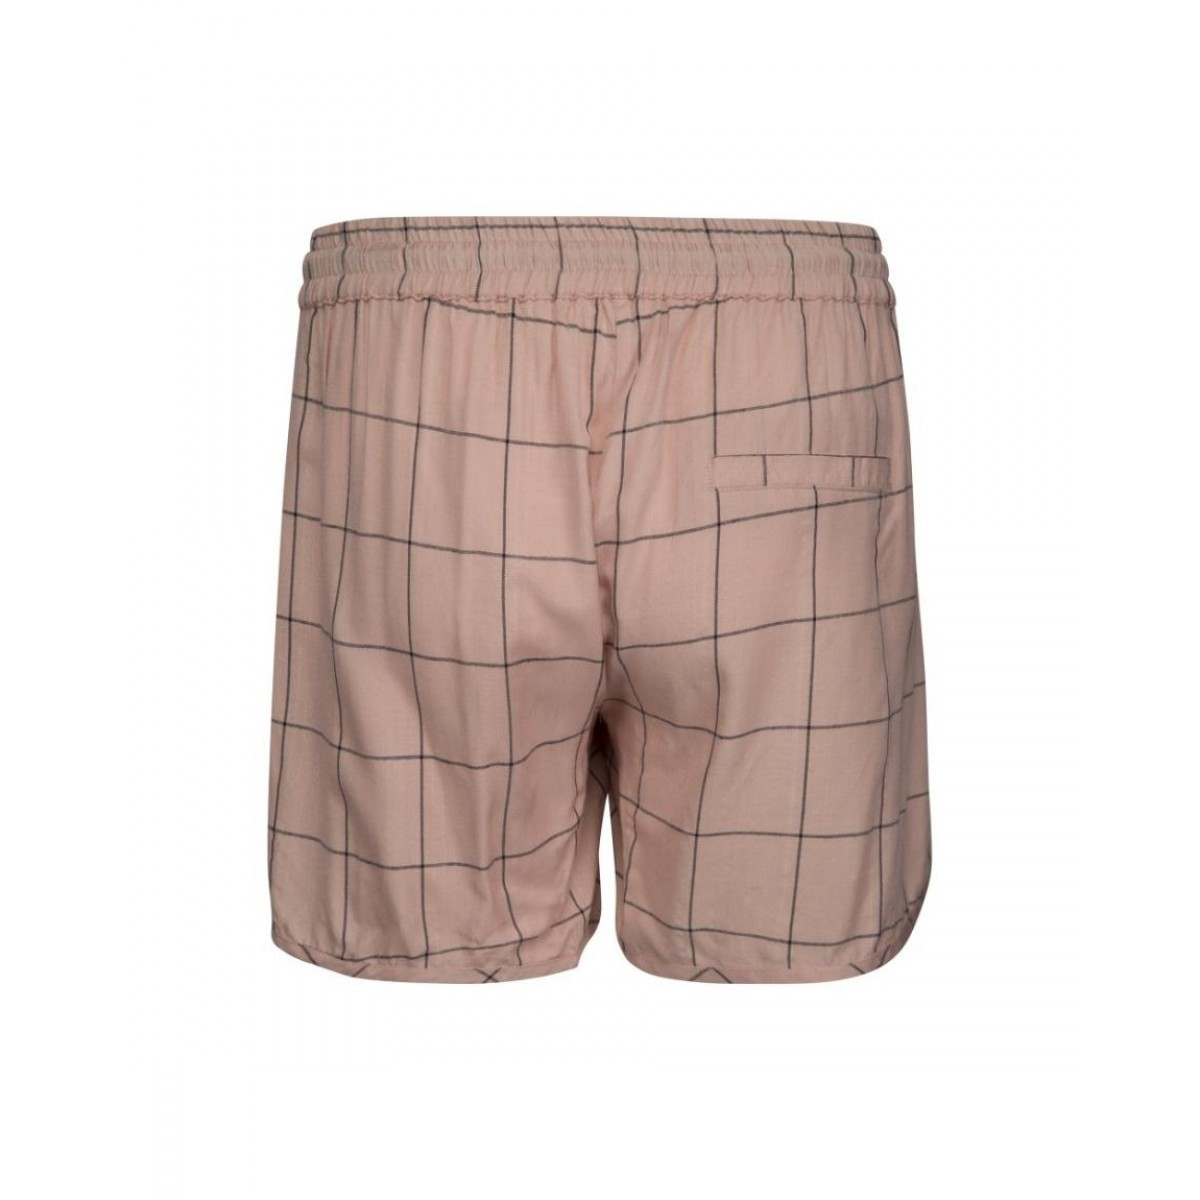 Sofie Schnoor S161238 Shorts Rose-35